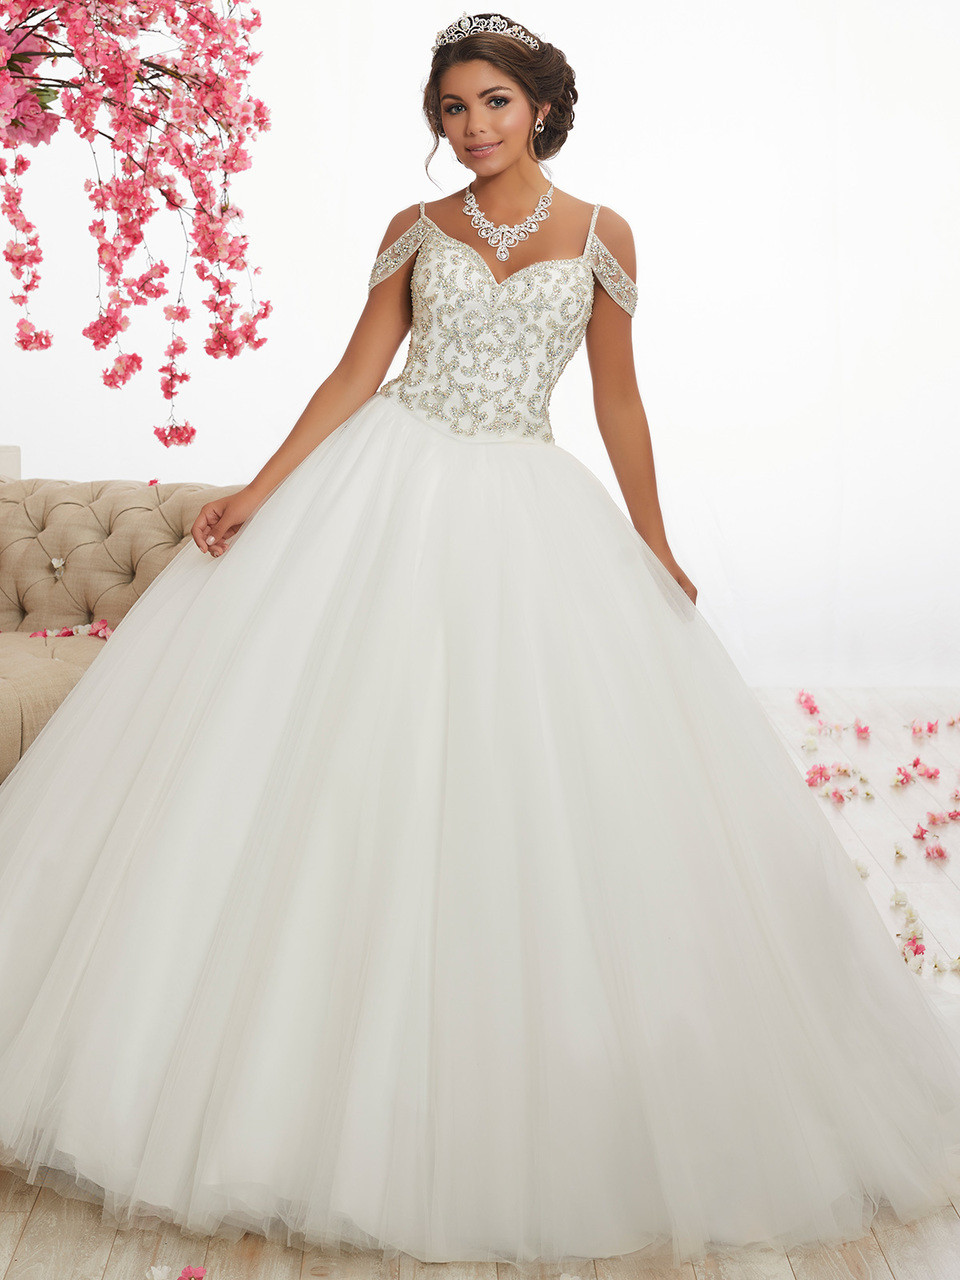 a734c267dbe8 white cold shoulder quinceanera dress with beaded bodice and traps that  ends in a full plain